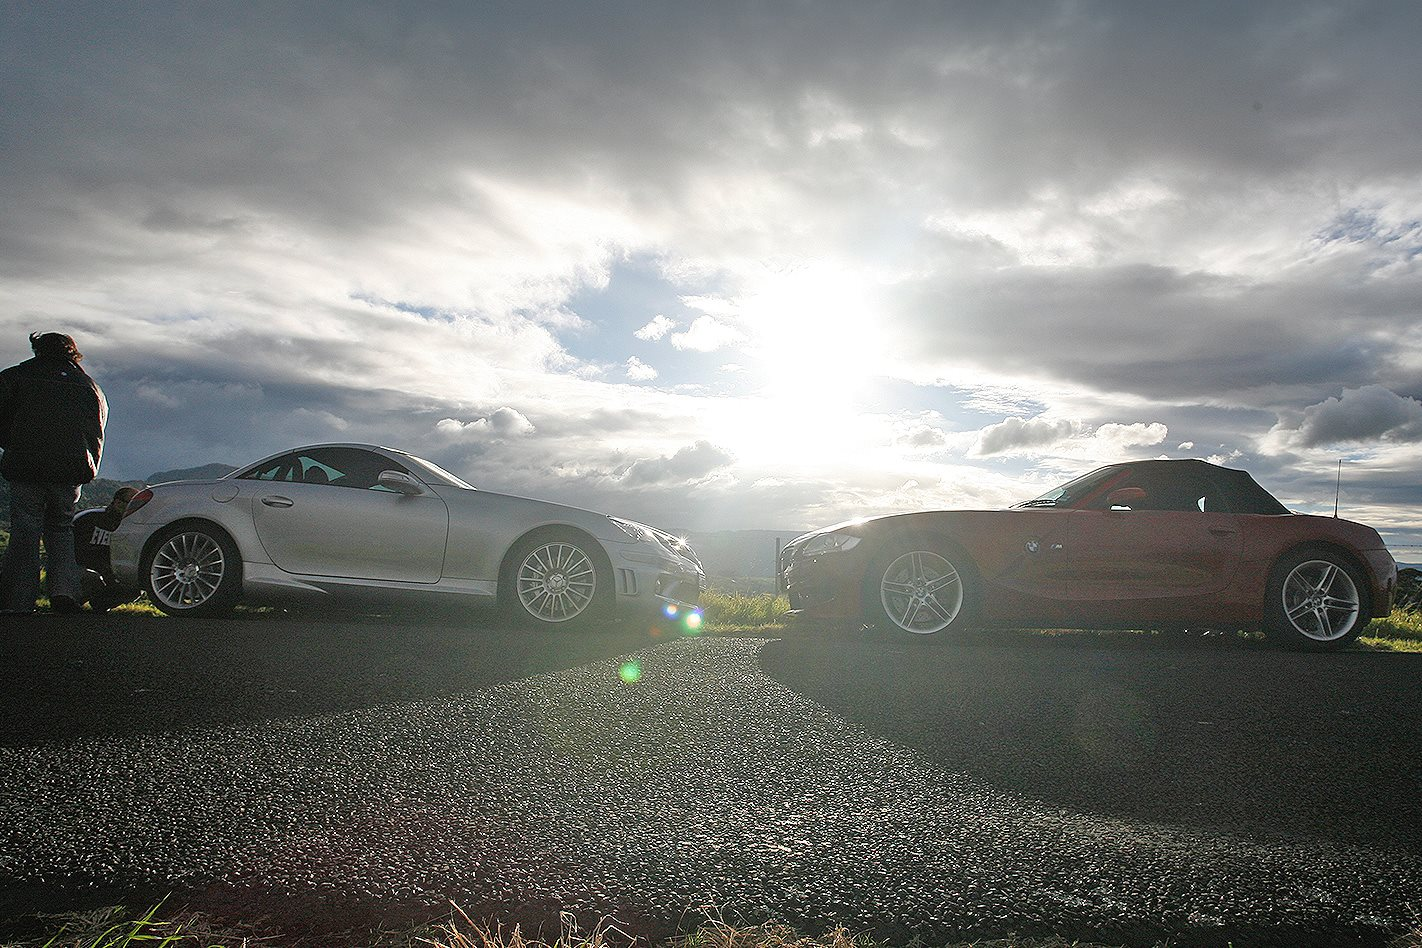 2006 BMW Z4 M vs Mercedes AMG SLK55 side